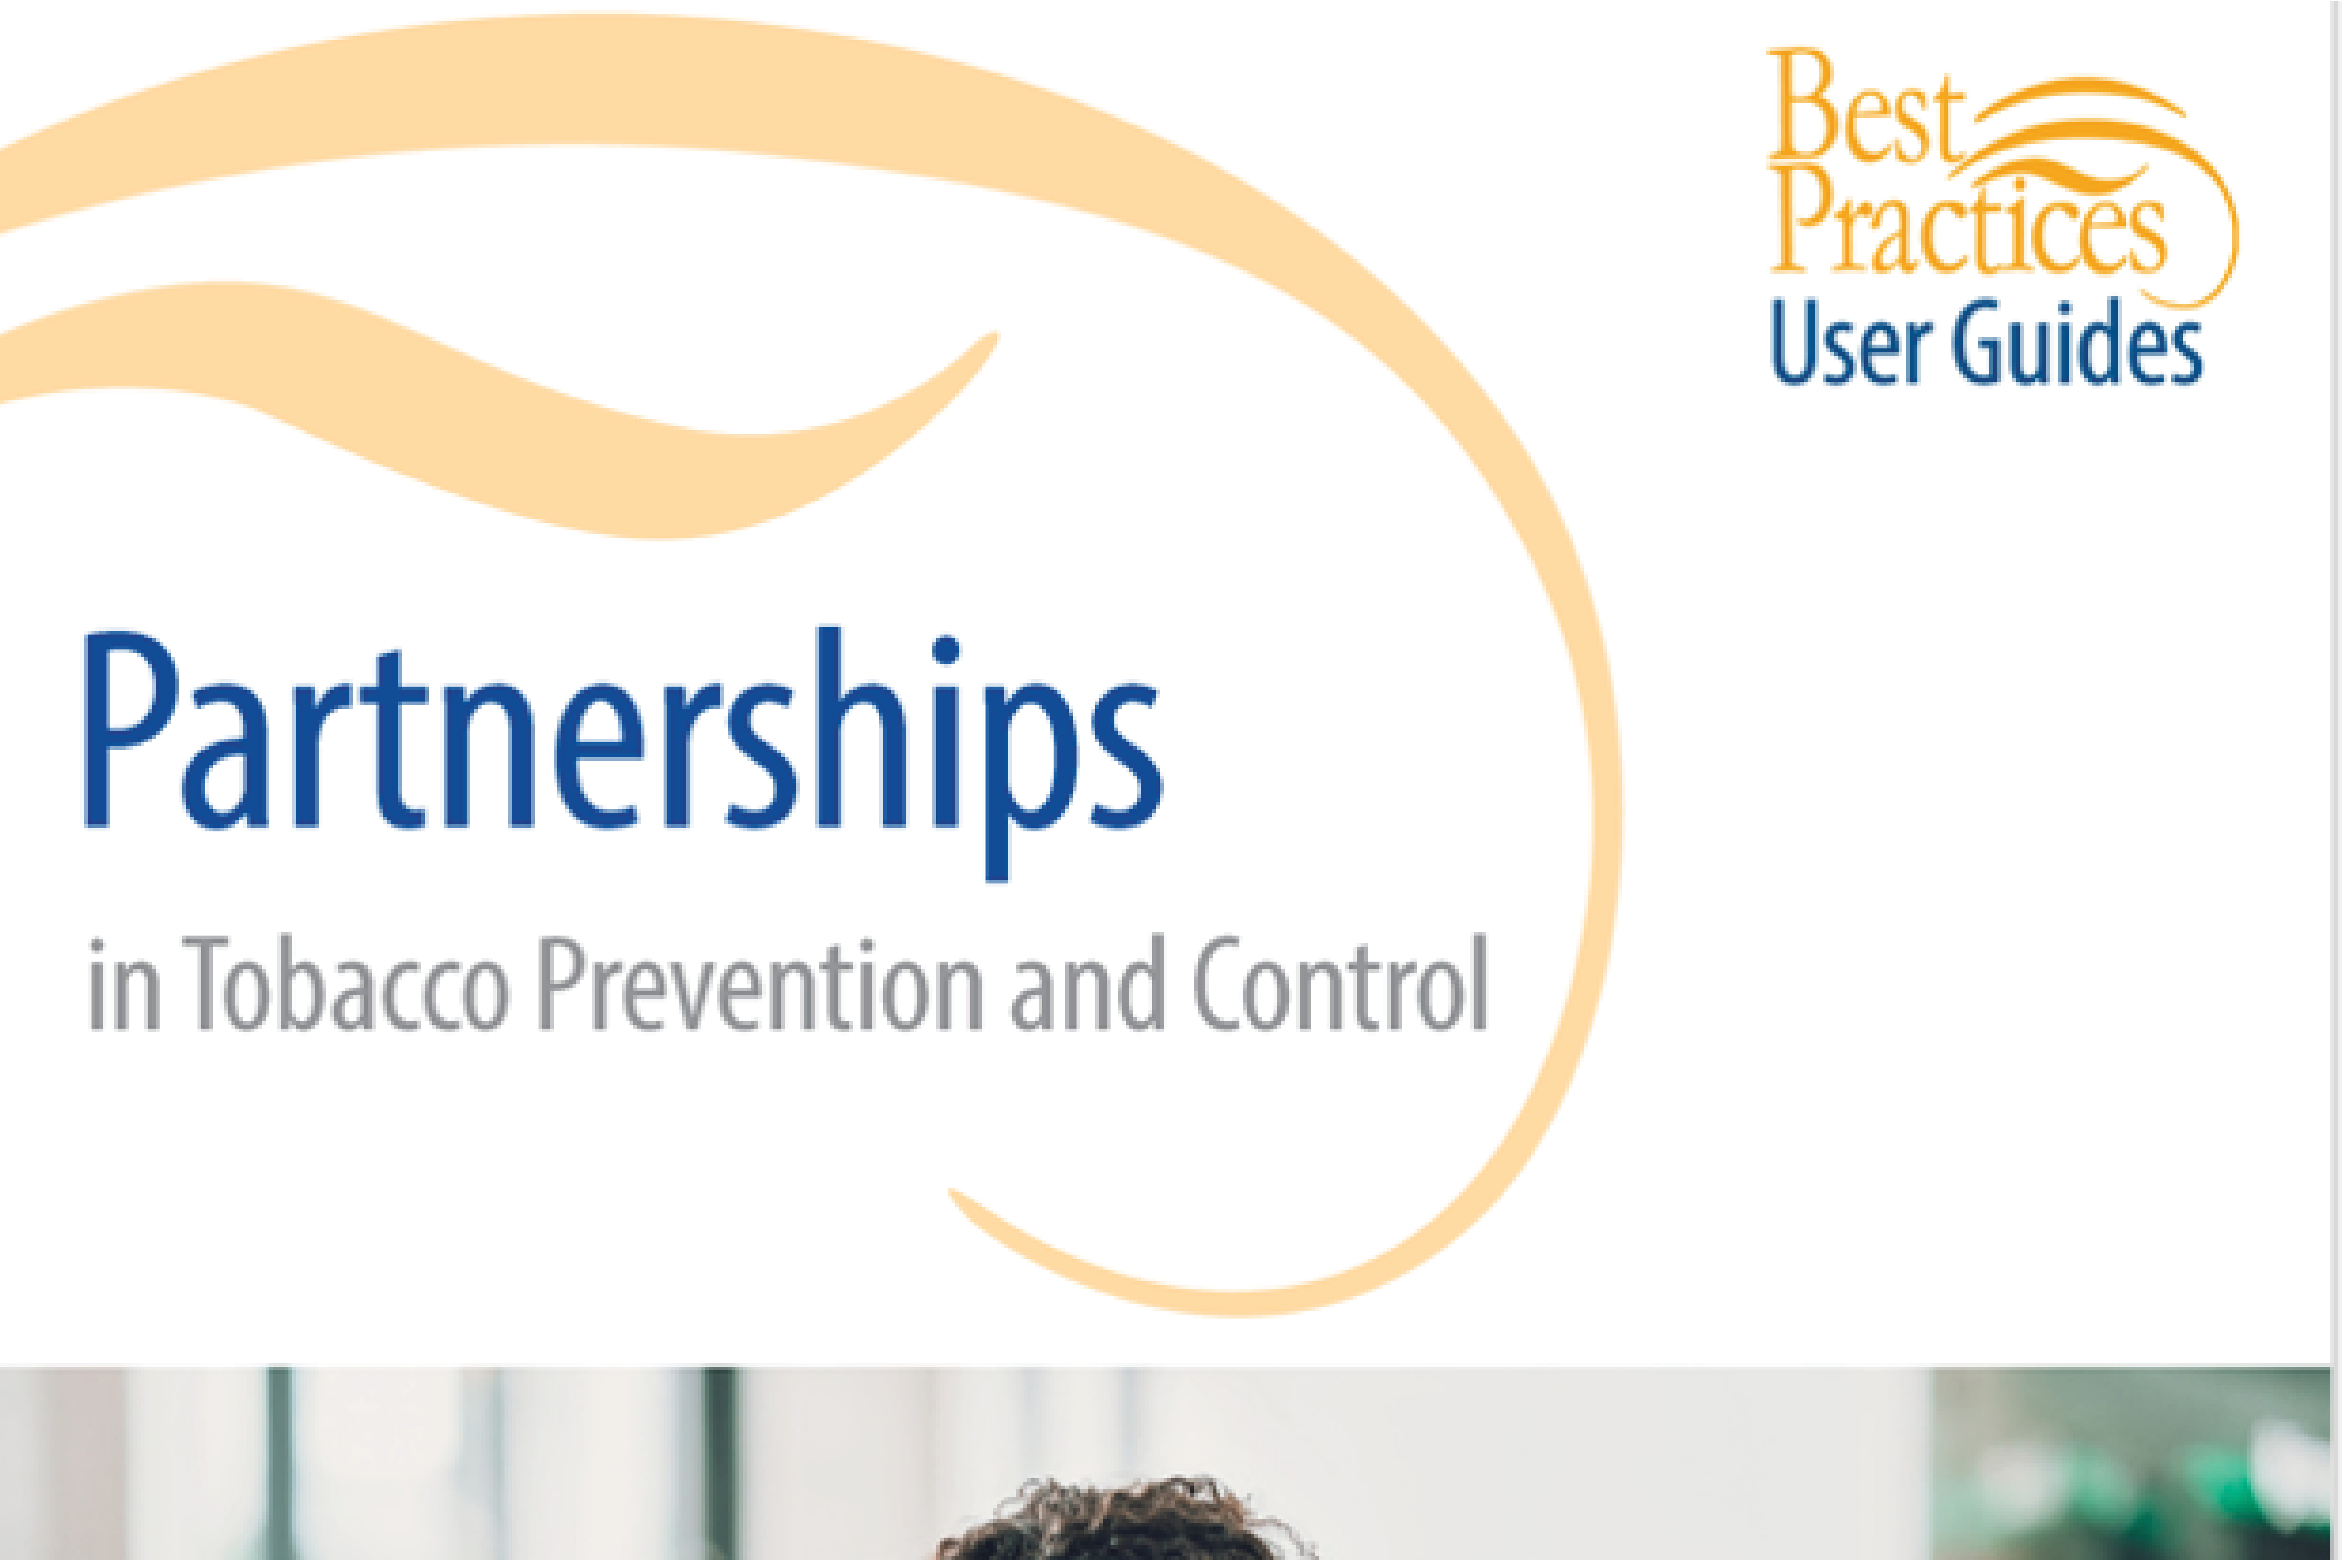 Cover of Best Practices User Guide: Partnerships